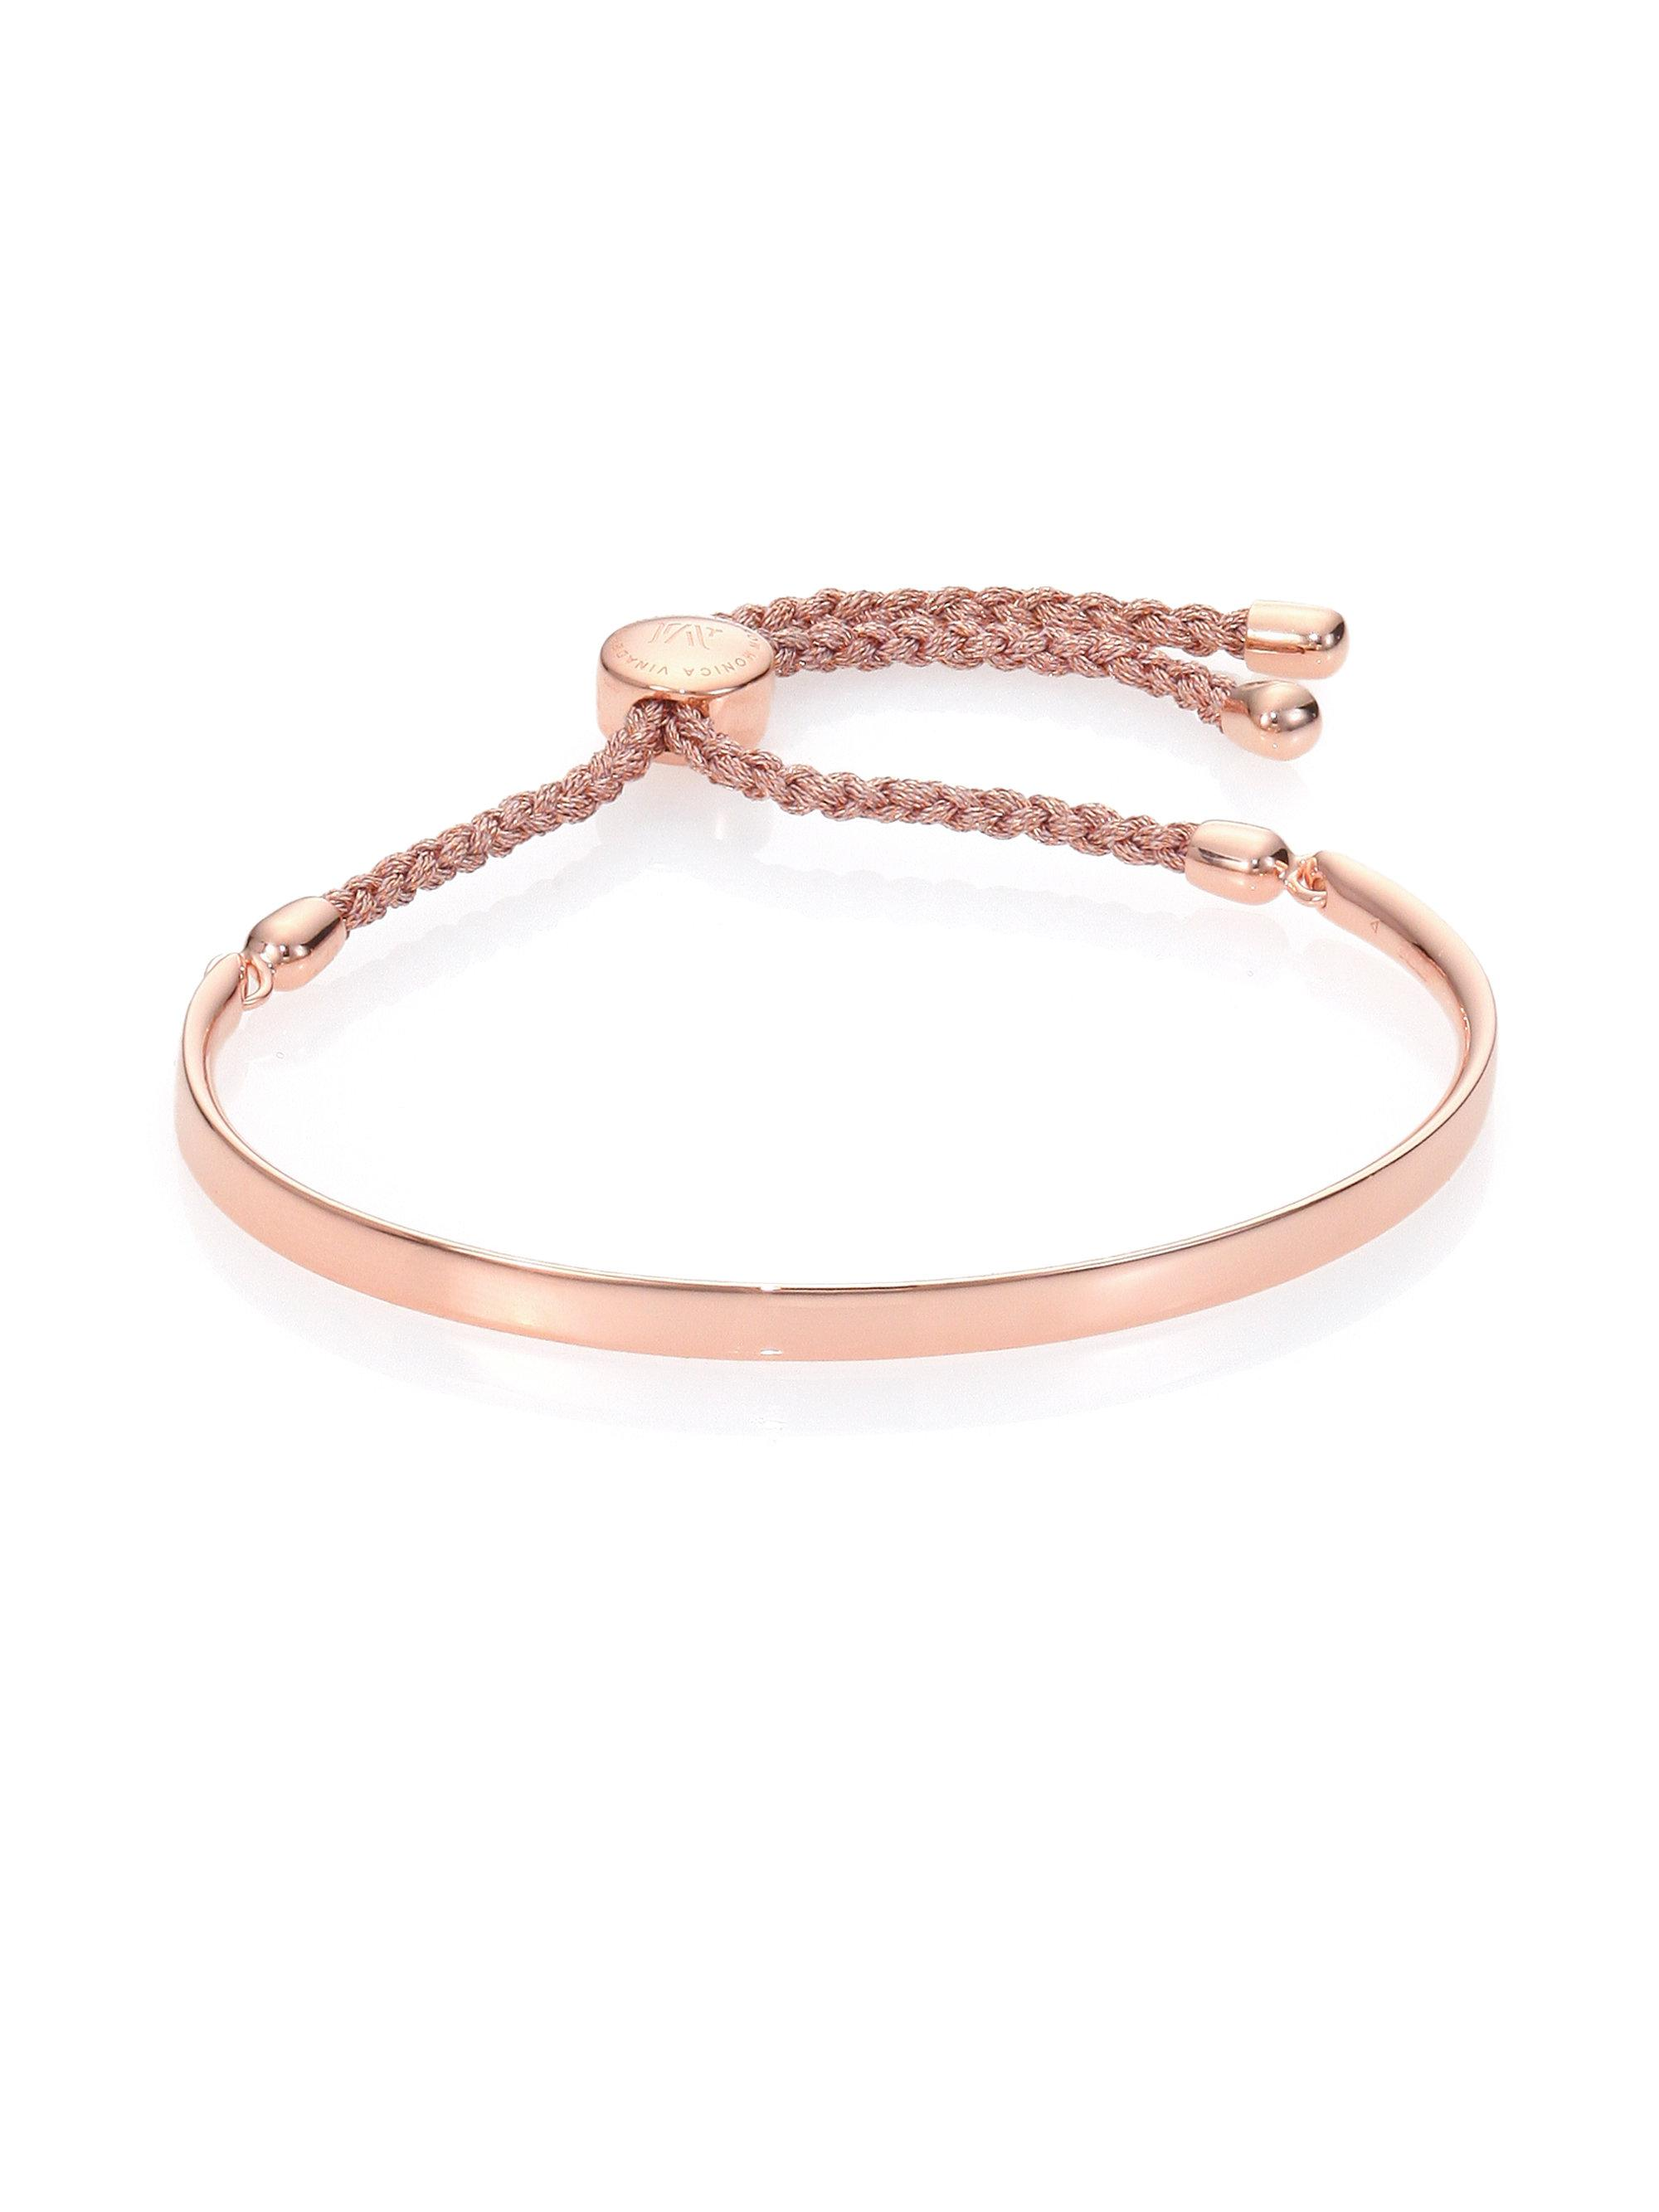 Fiji Friendship Bracelet - Black, Rose Gold Vermeil on Silver Monica Vinader